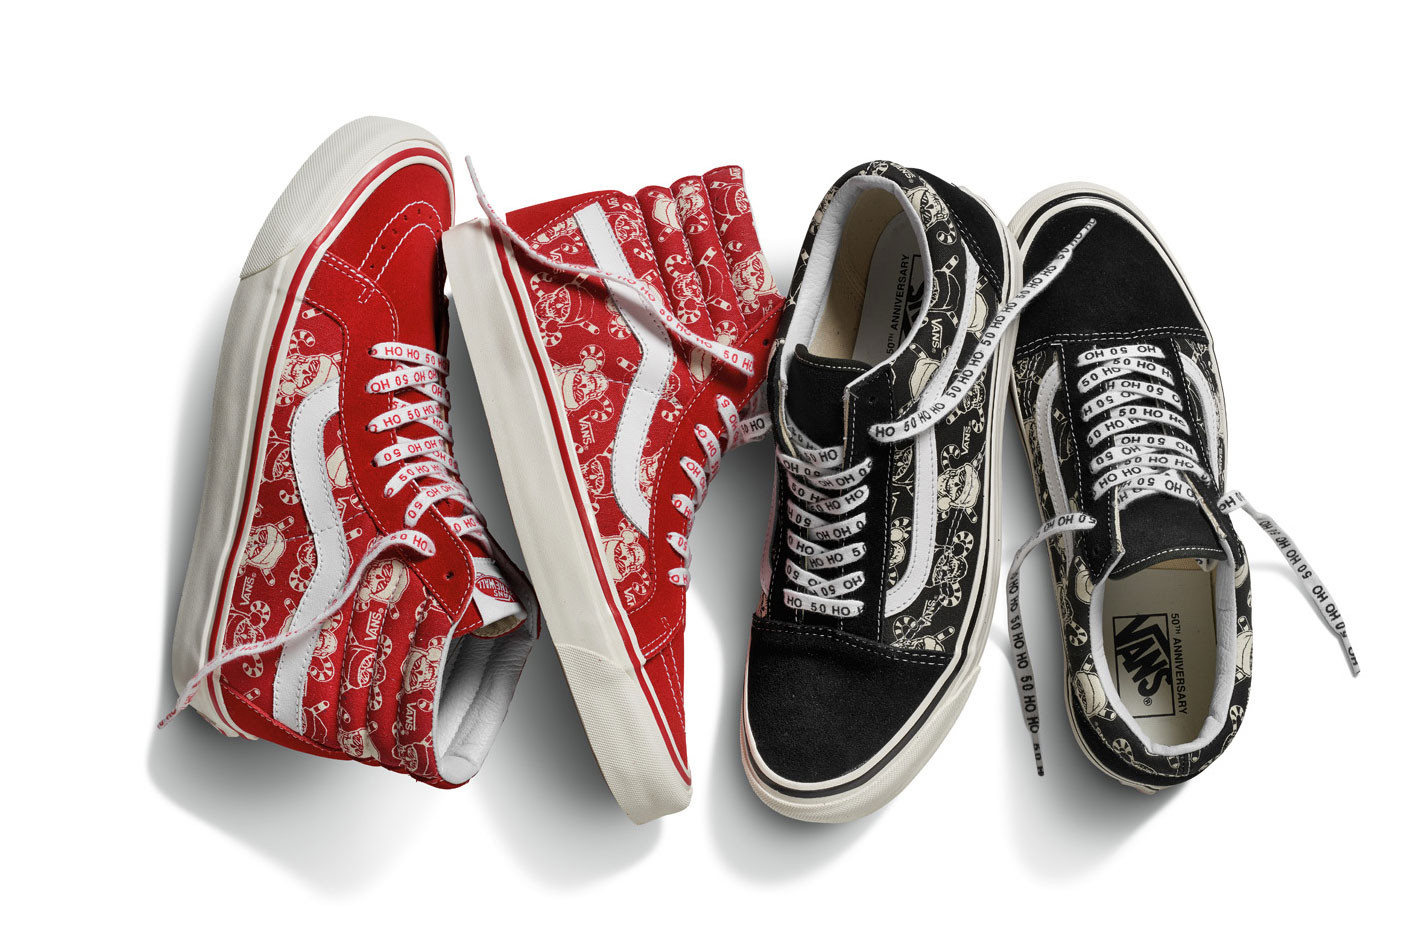 Vans 2016 Christmas Holiday Collection